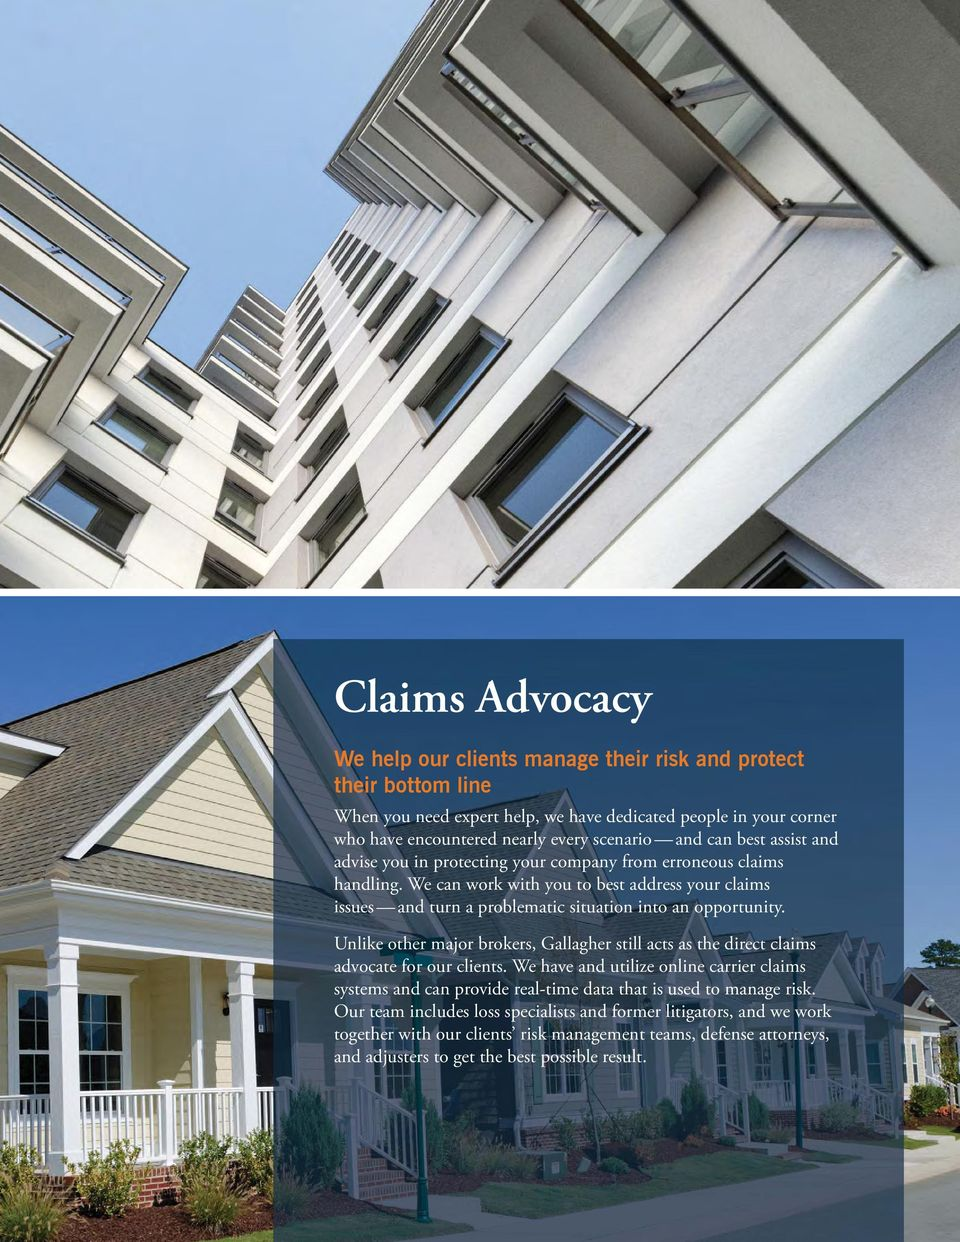 We can work with you to best address your claims issues and turn a problematic situation into an opportunity.